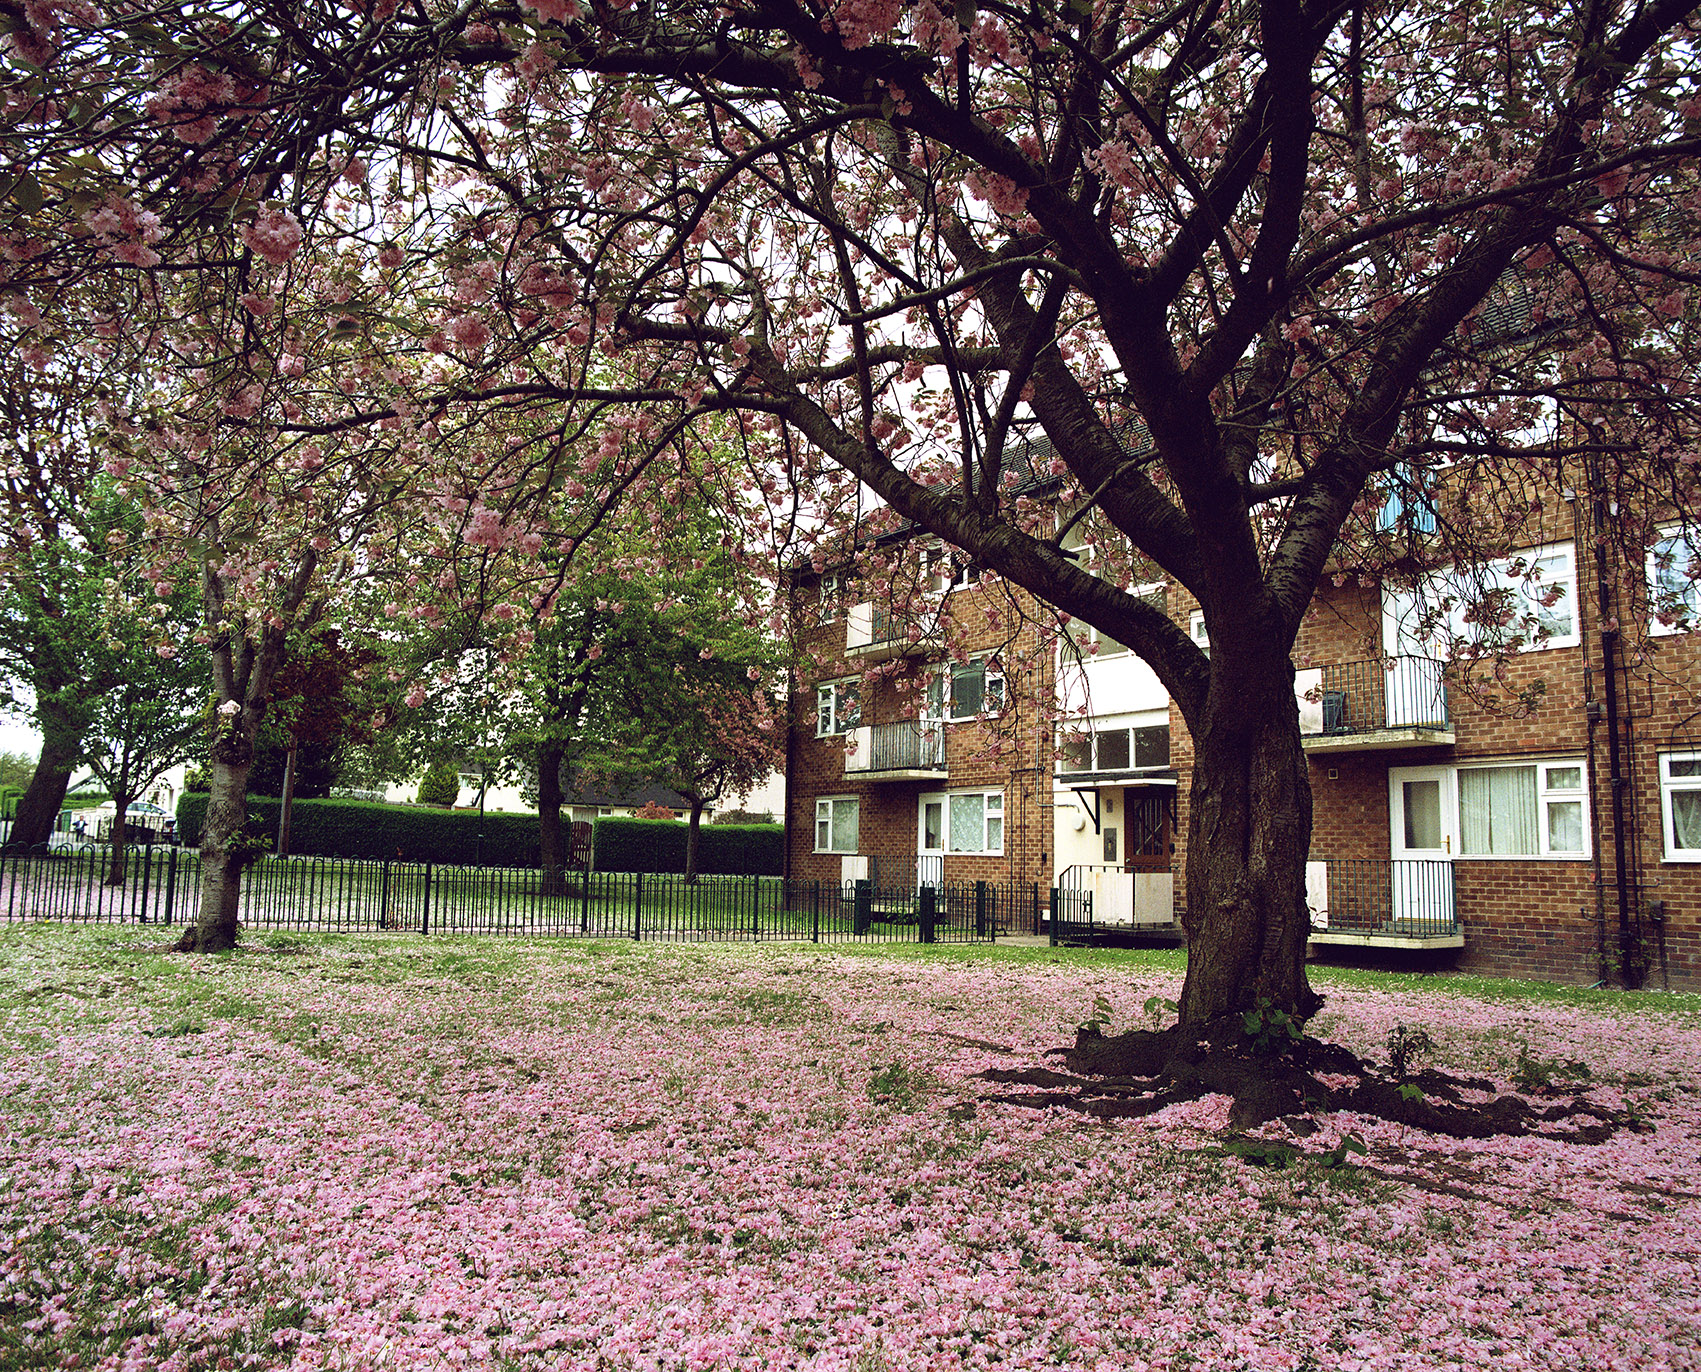 Image of a small block of flats with a tree outside and blossom on the ground